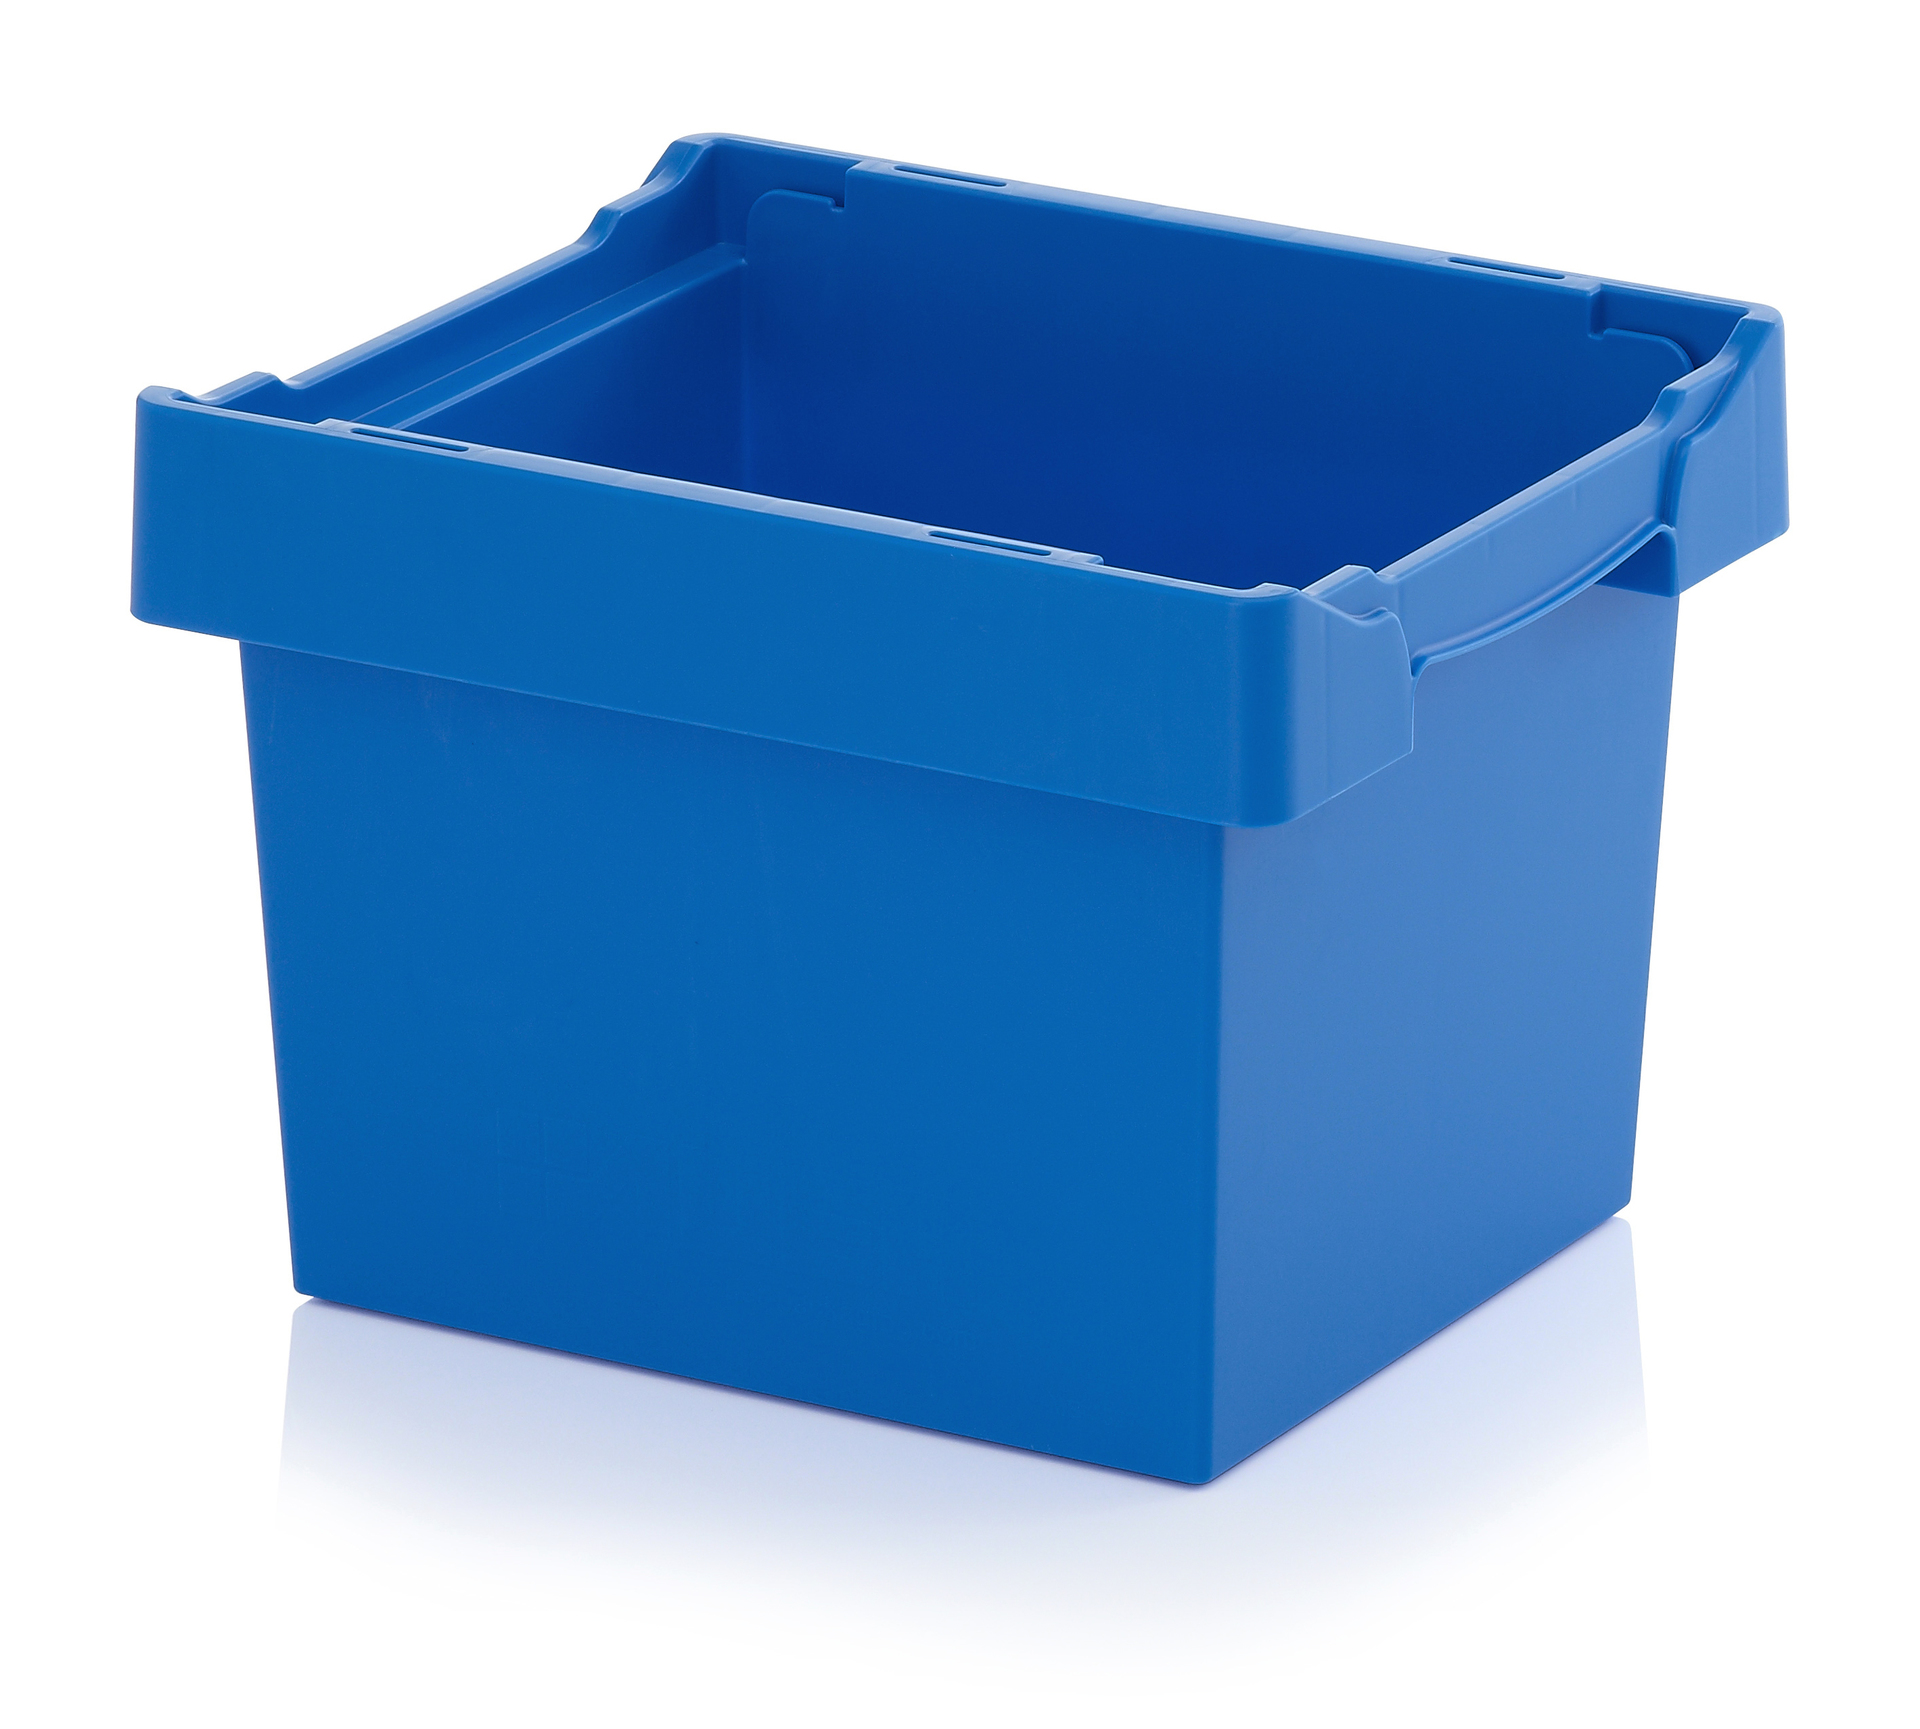 RC4270 Reusable Containers - Plastic Mouldings Northern